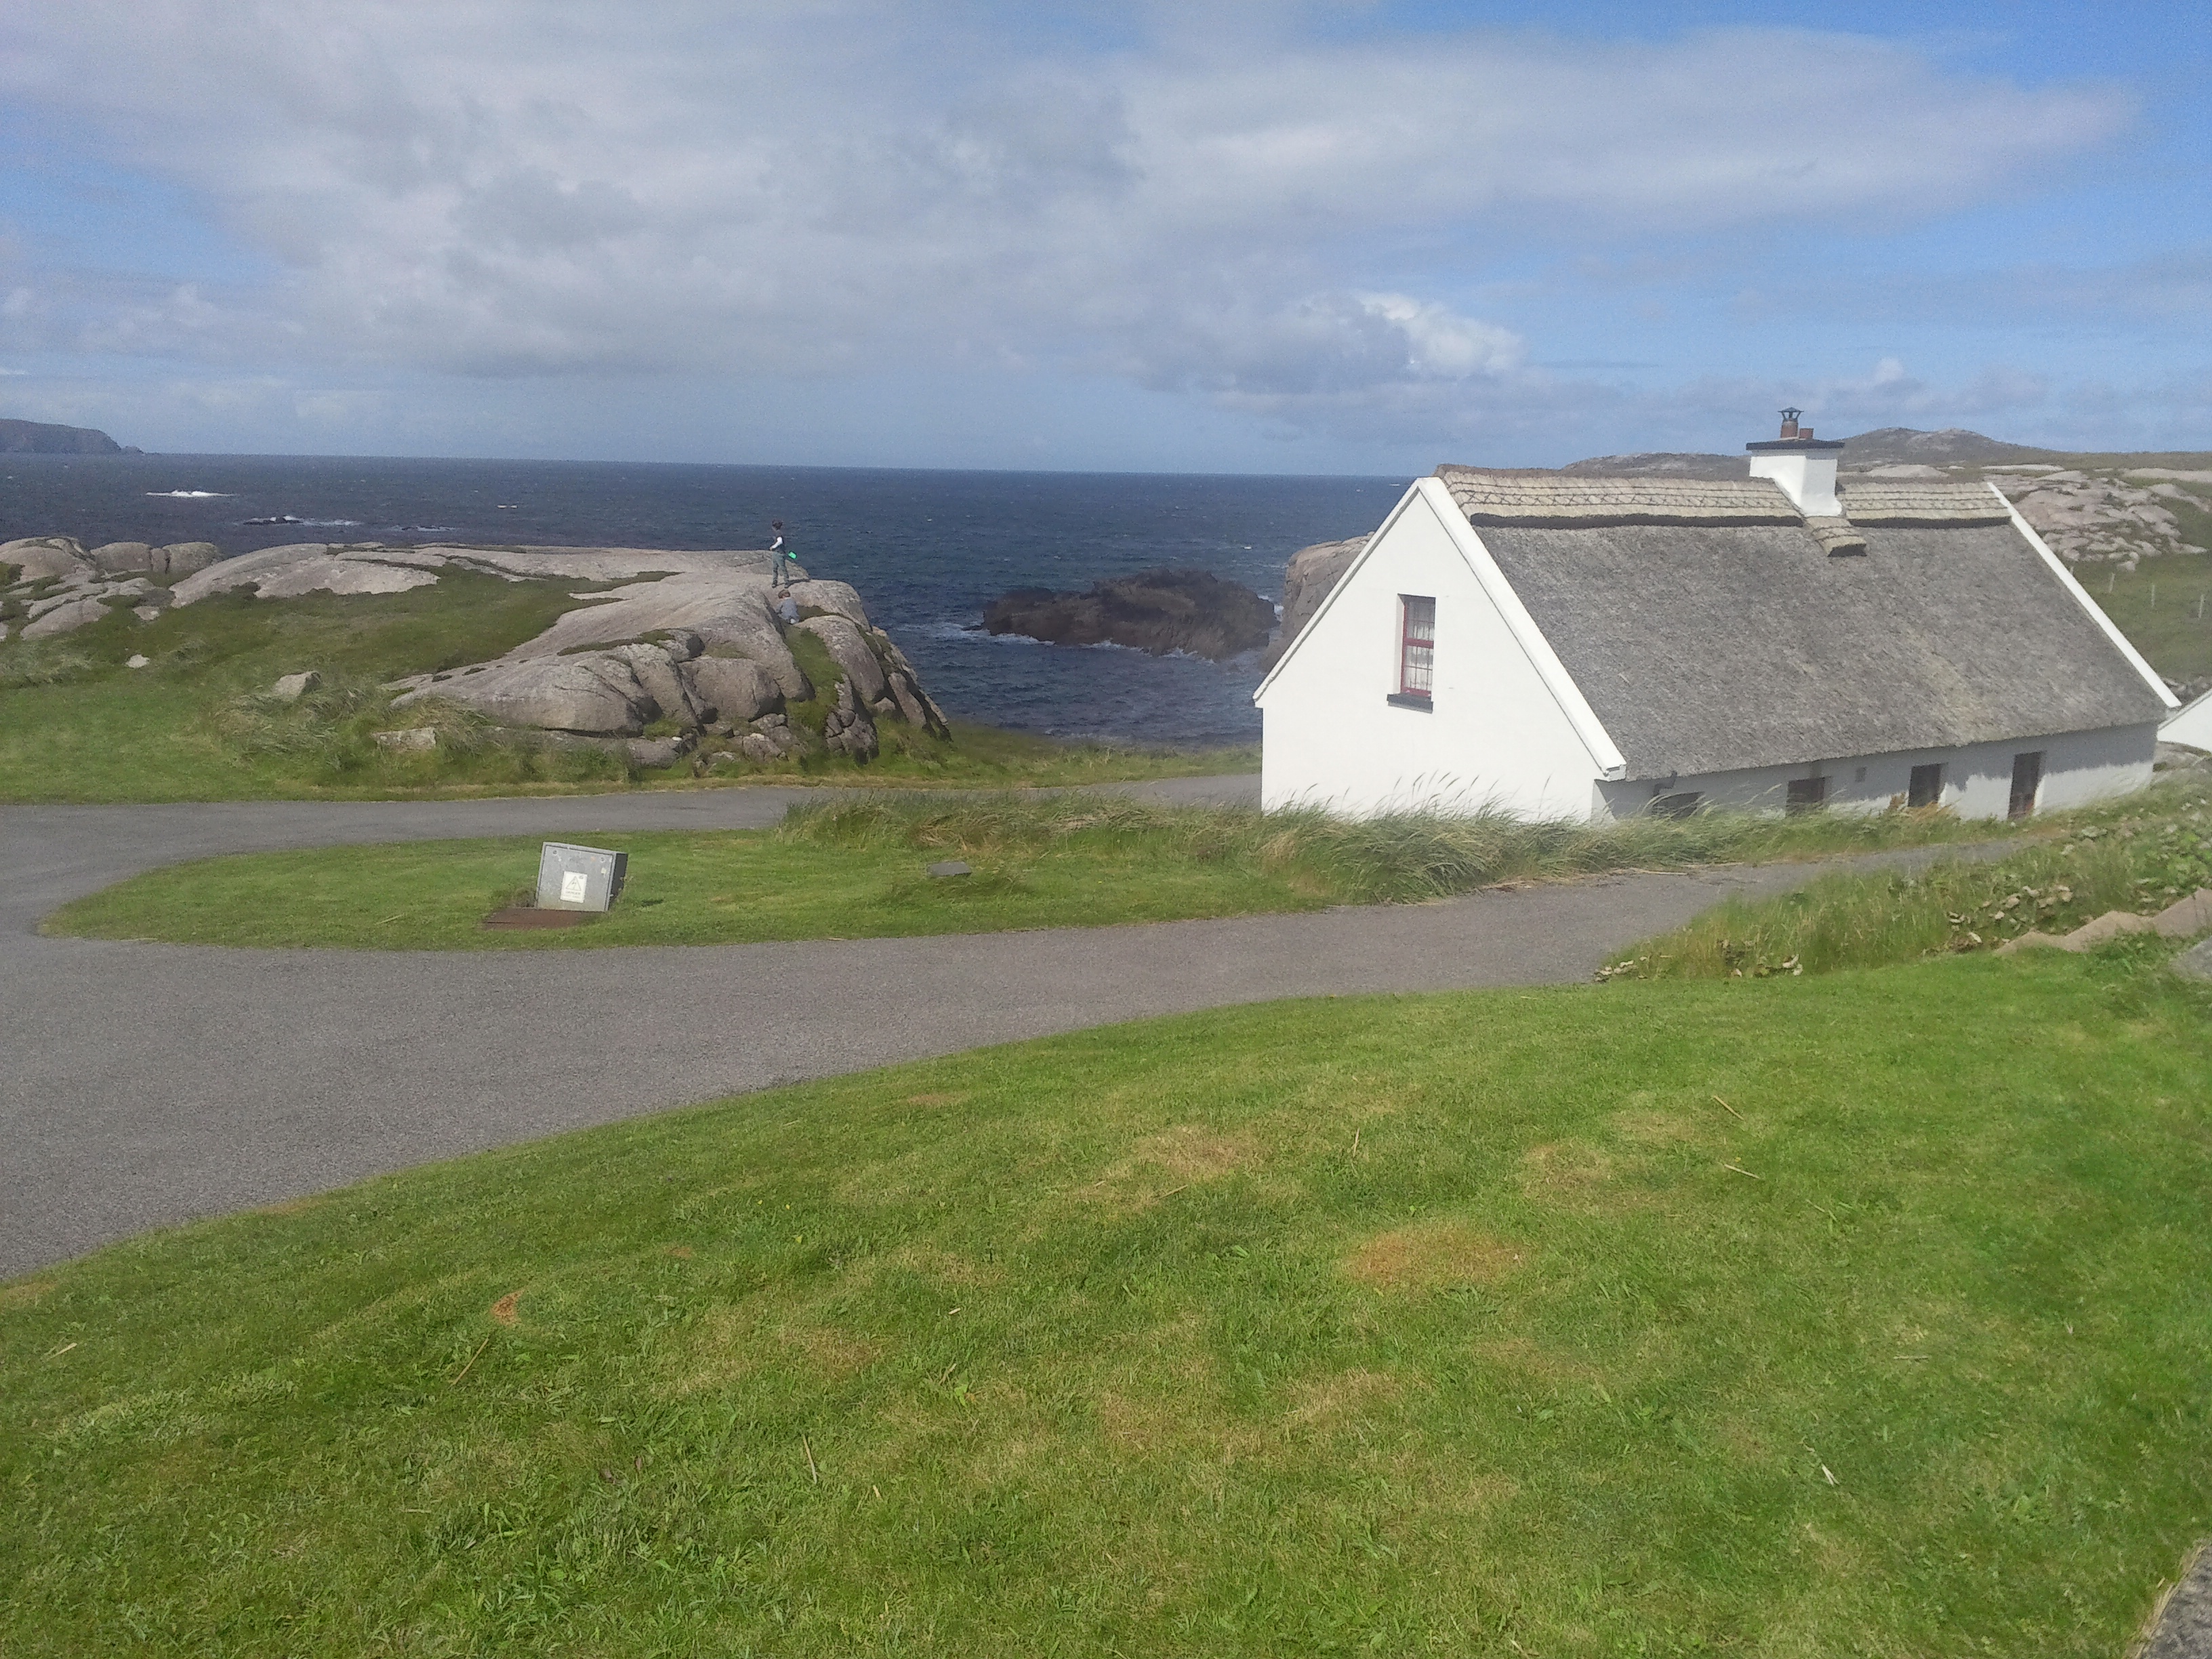 donegal thatched cottages cruit island kincasslagh